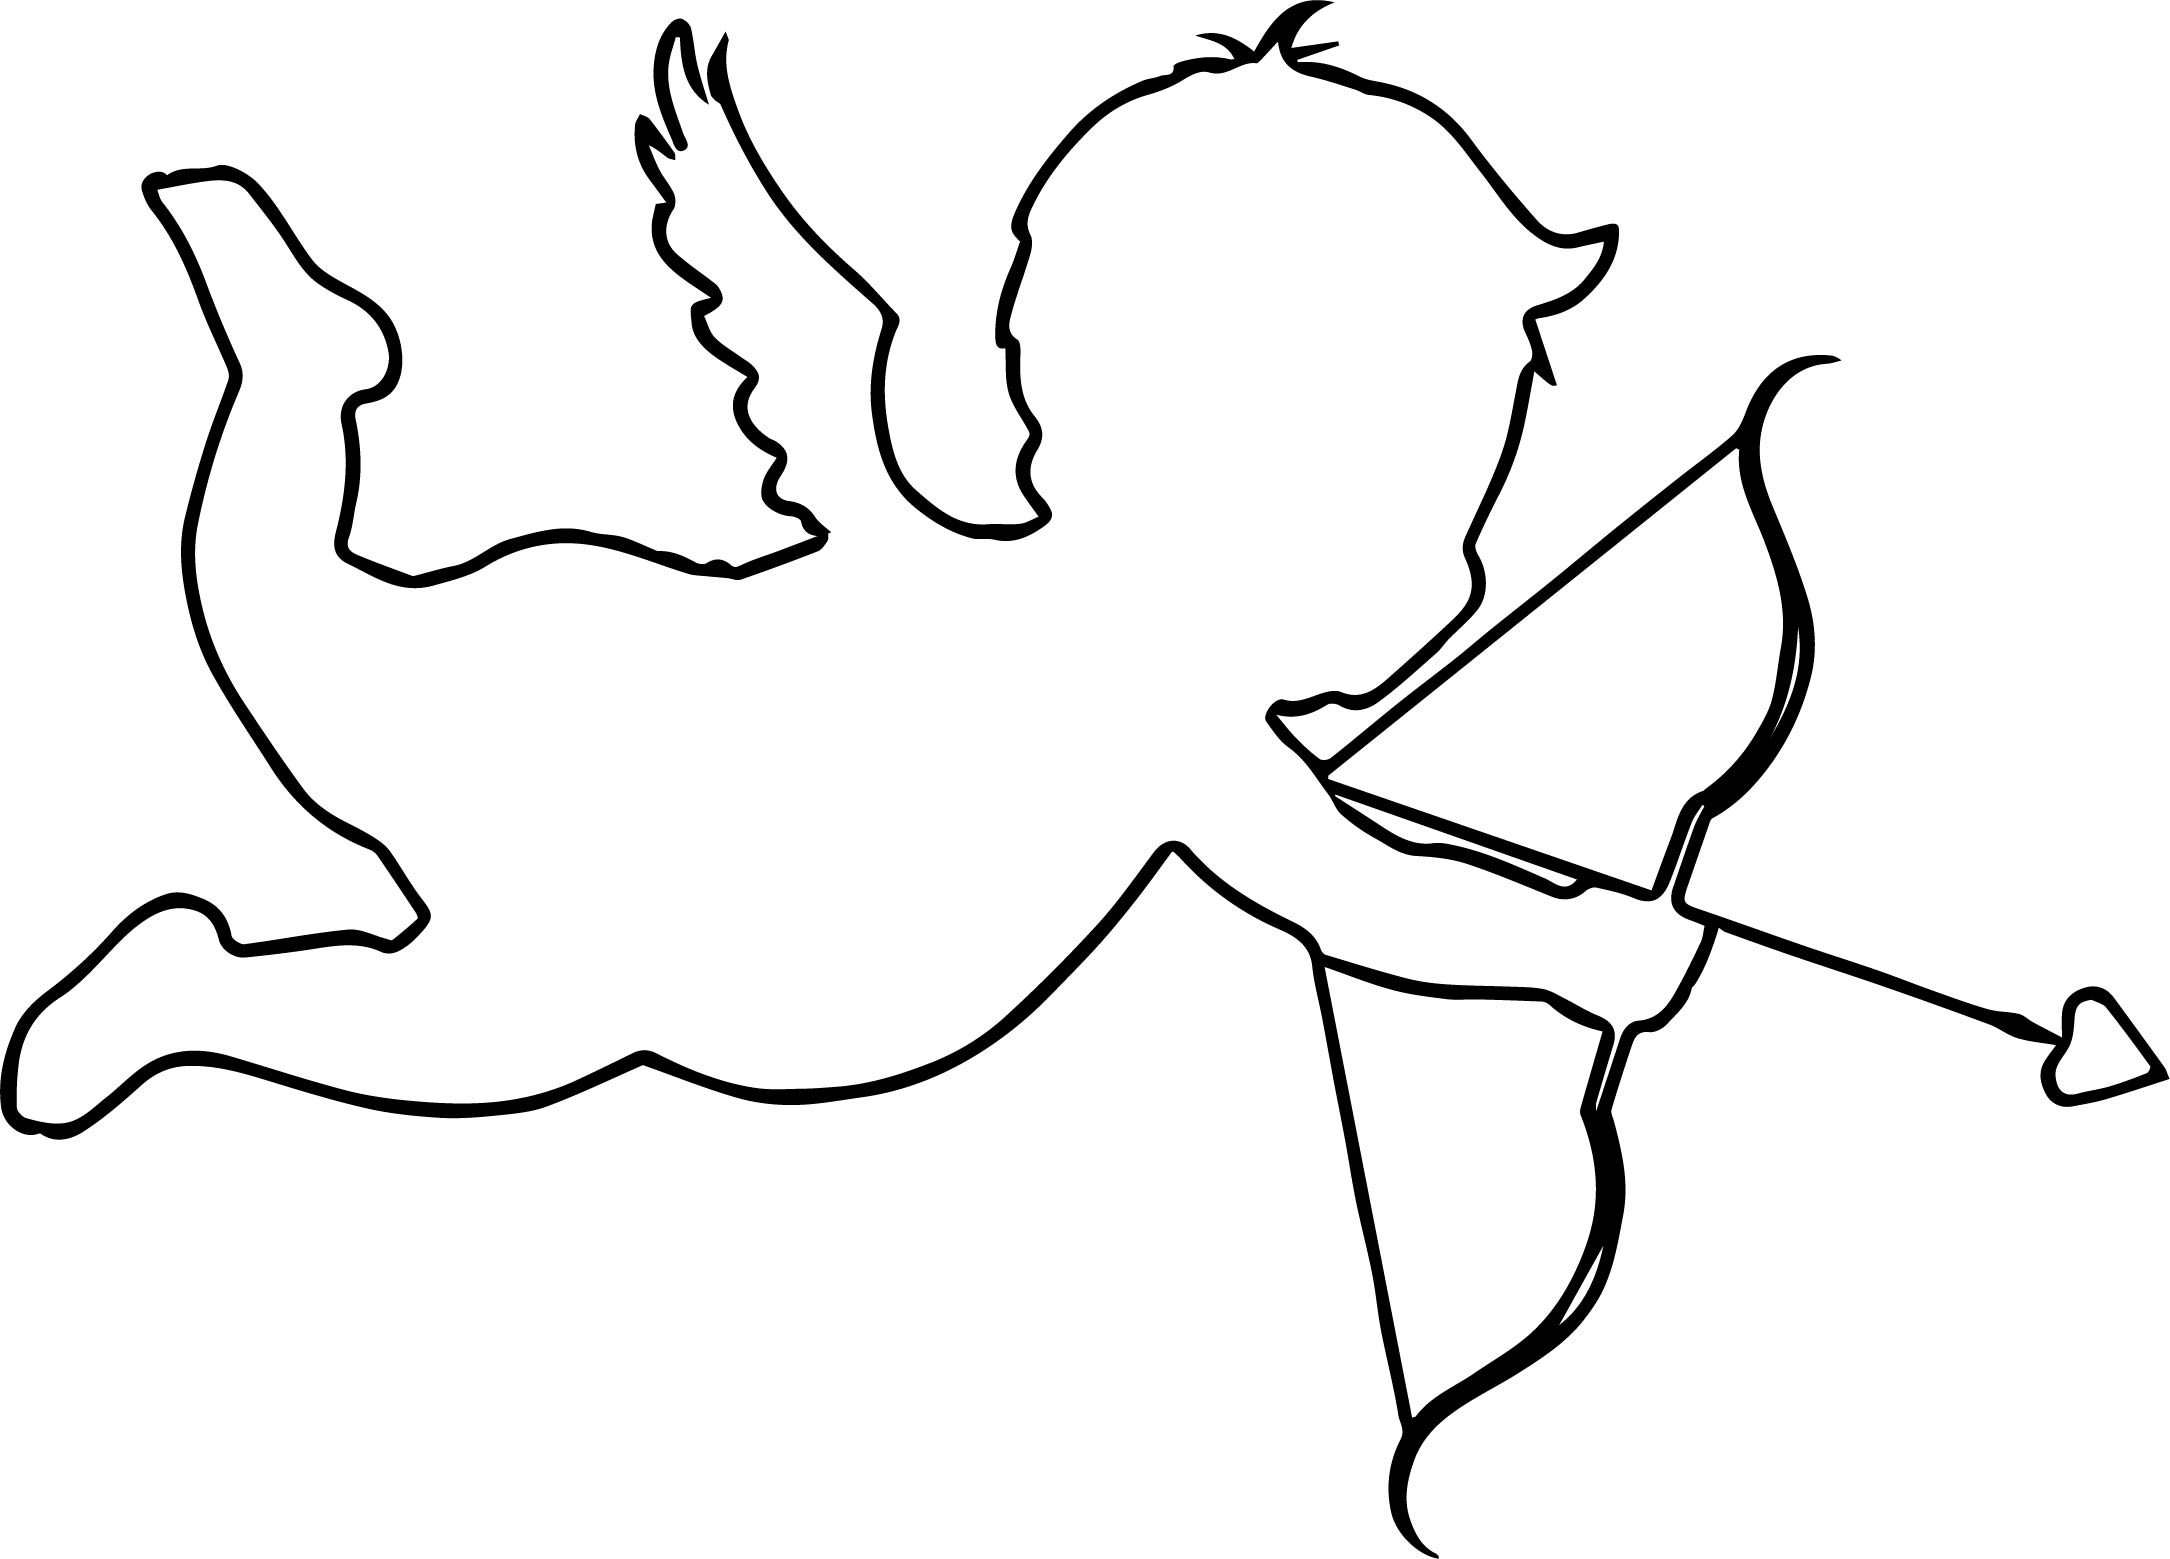 Cupido Outline Coloring Page